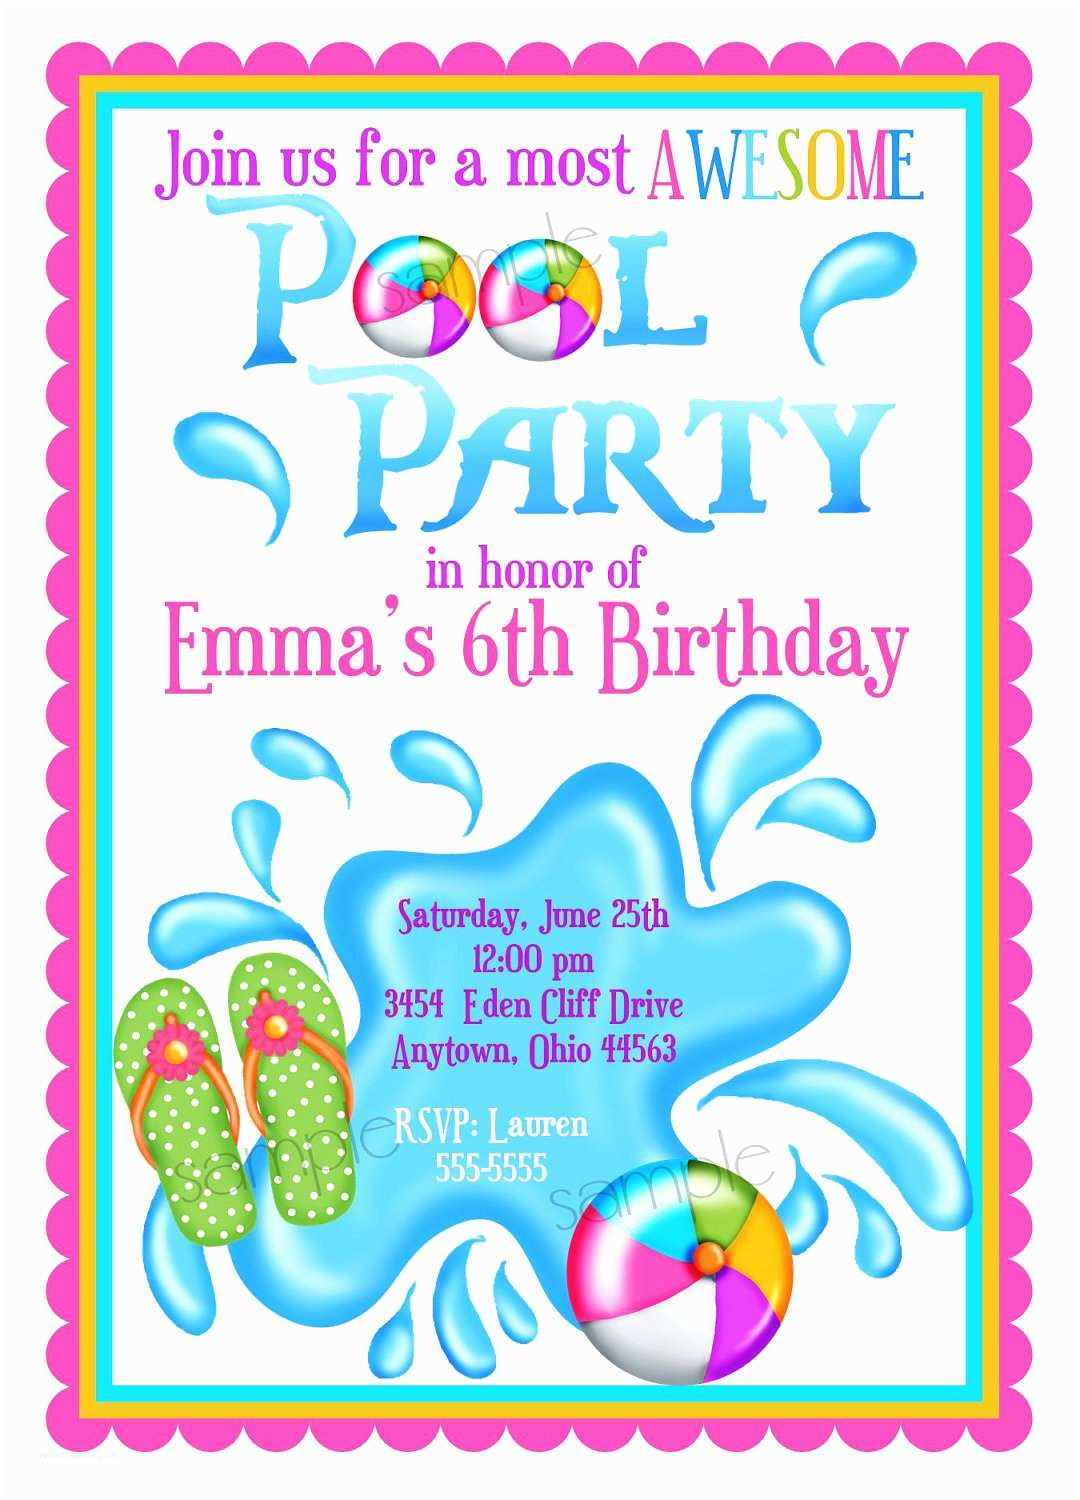 Customized Party Invitations Pool Party Invitations Personalized Invitations Girl